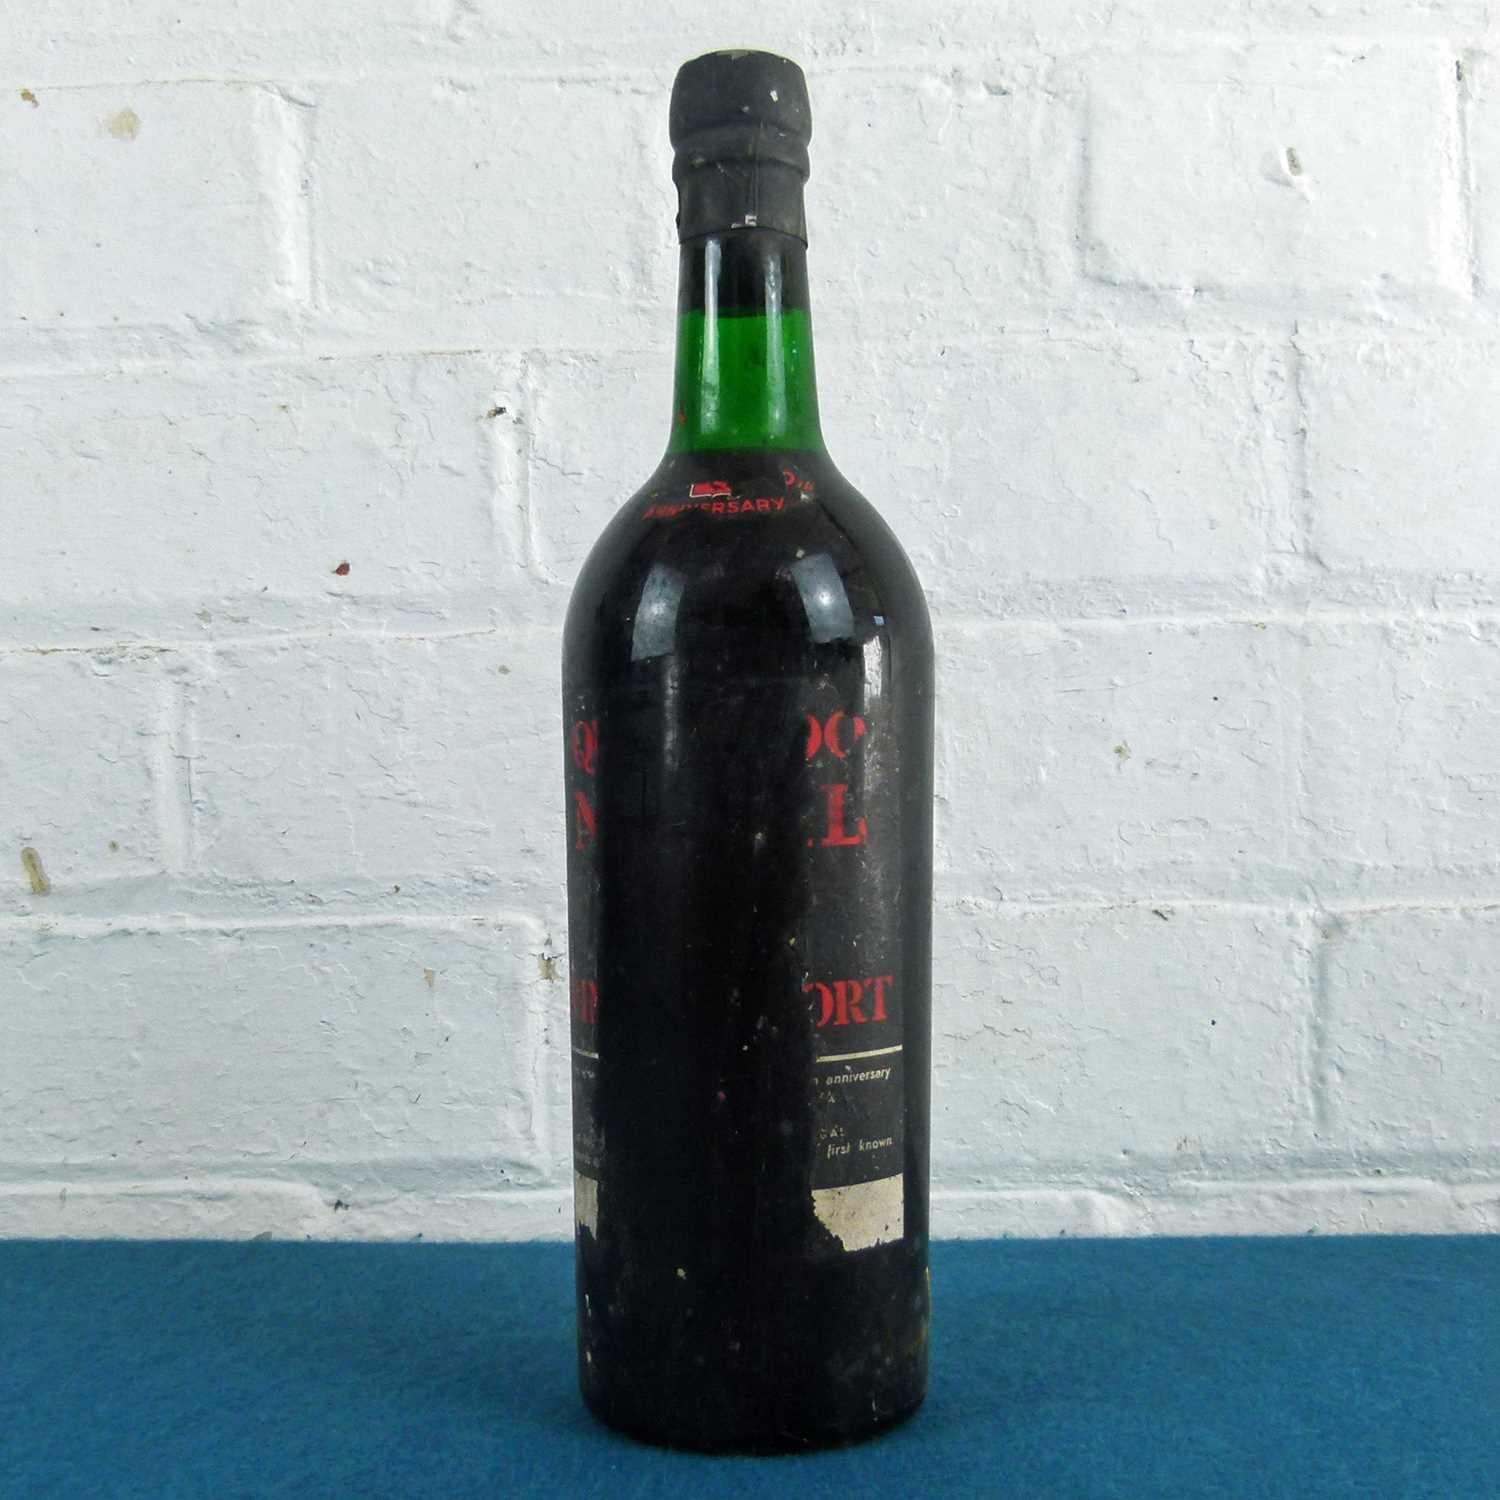 Lot 35 - 1 Bottle Quinta do Noval Vintage Port 1963 (b/n) 150th Anniversary Edition